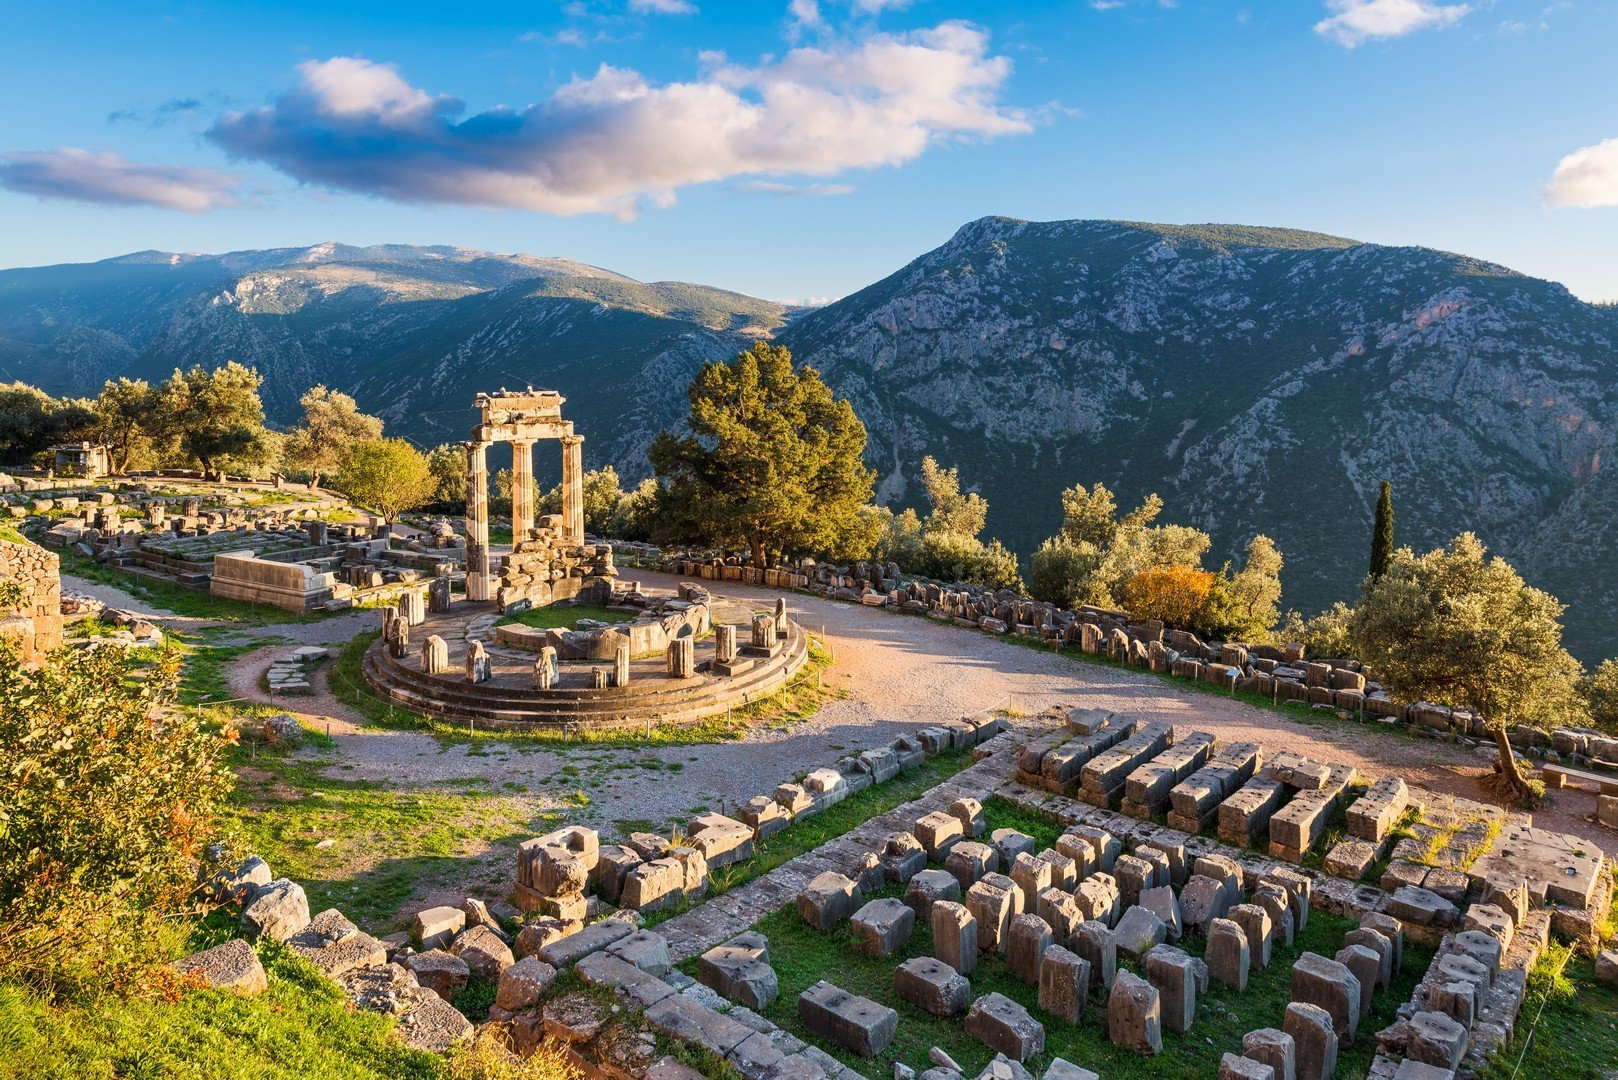 Ruins of the Temple of Athena Pronaia in ancient Delphi, Greece shutterstock_1246195618